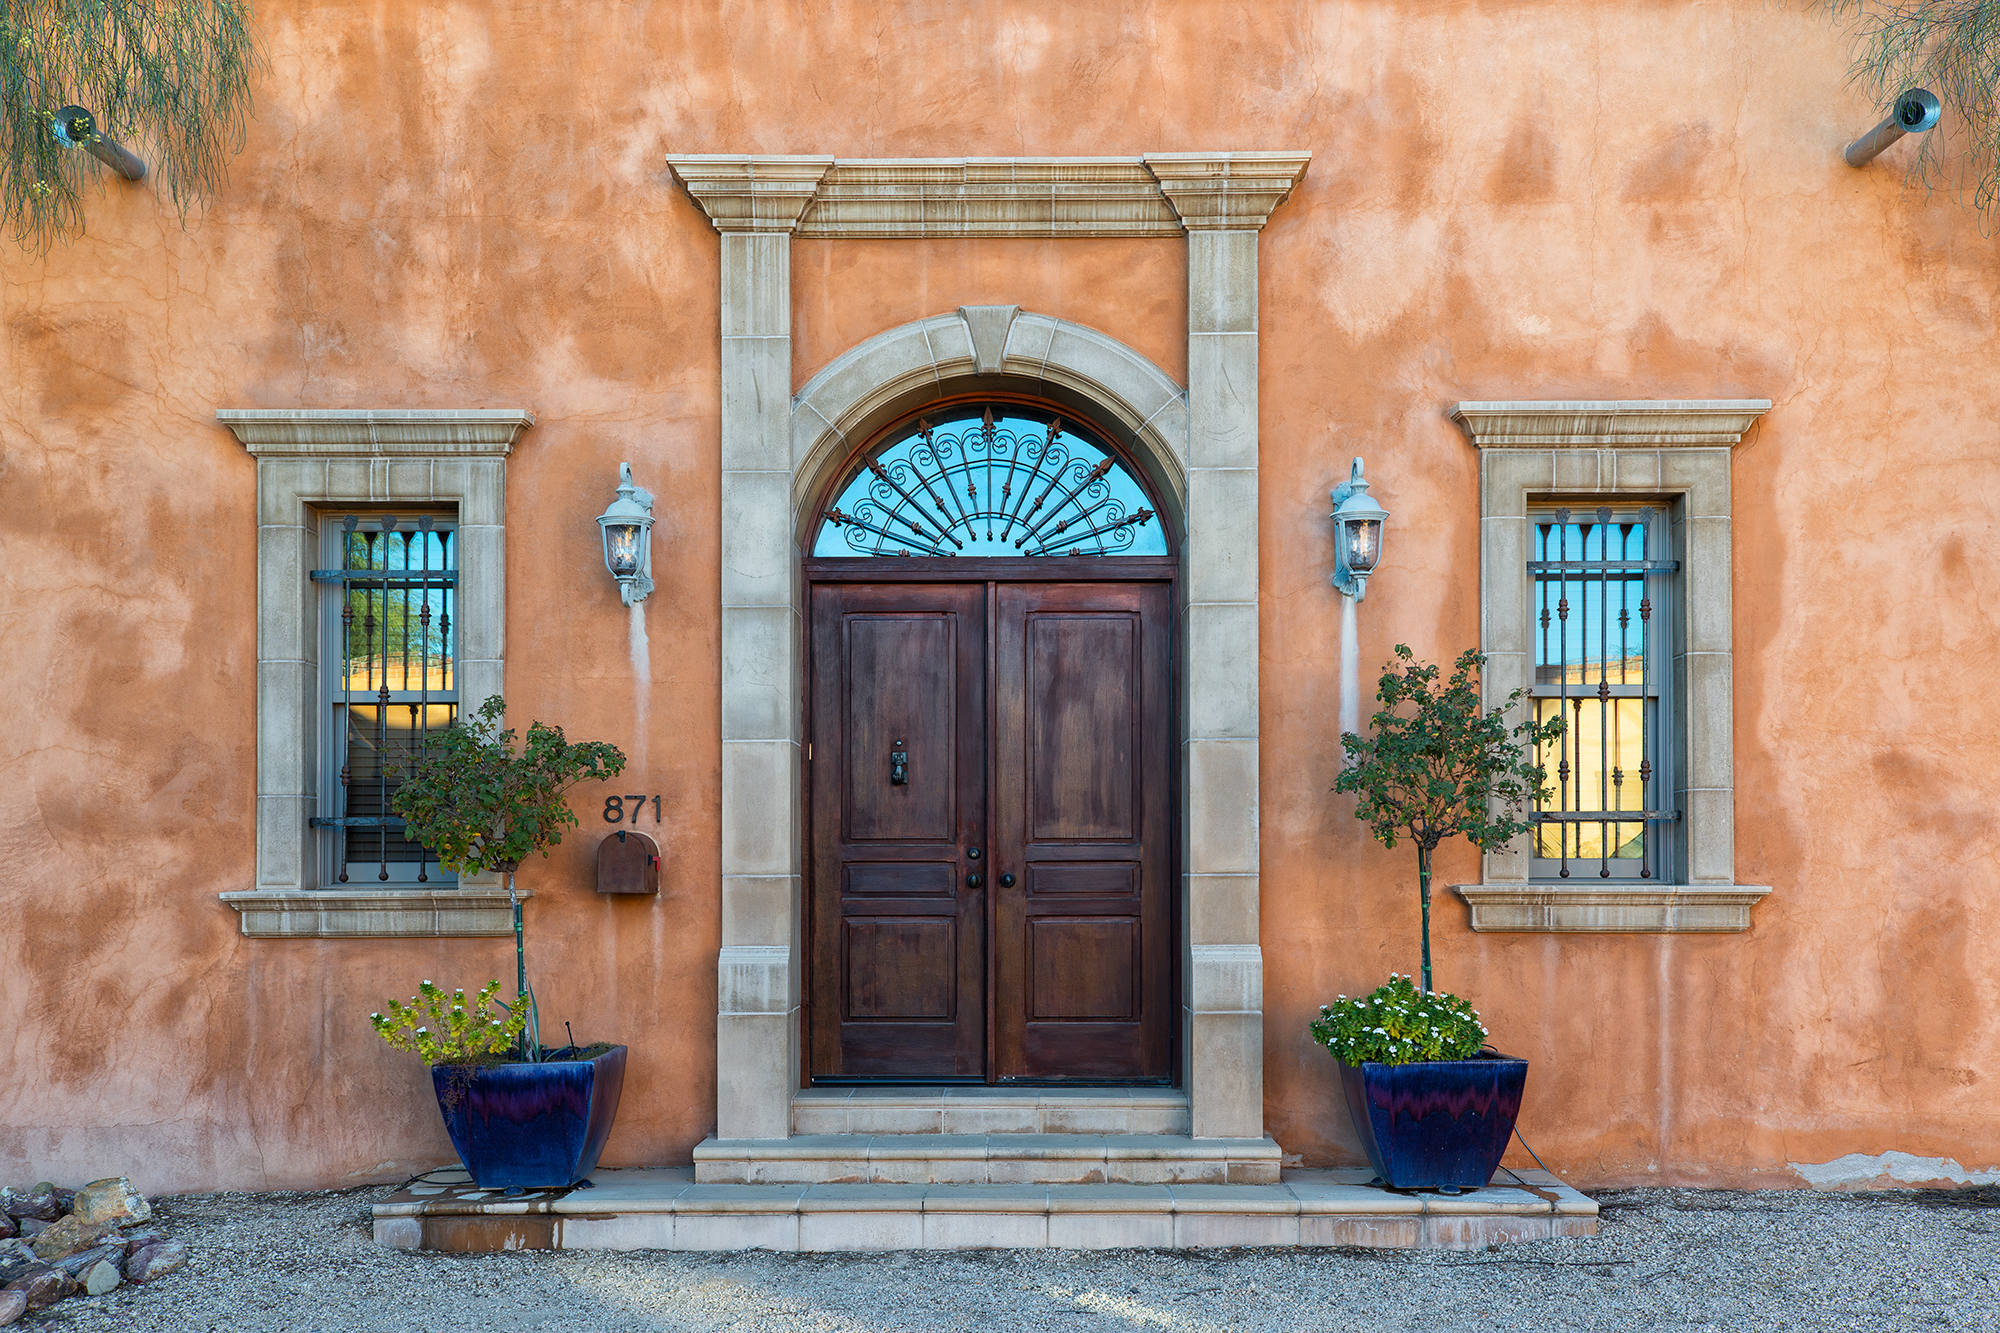 Elegant Doors. Tucson, Arizona, 2015